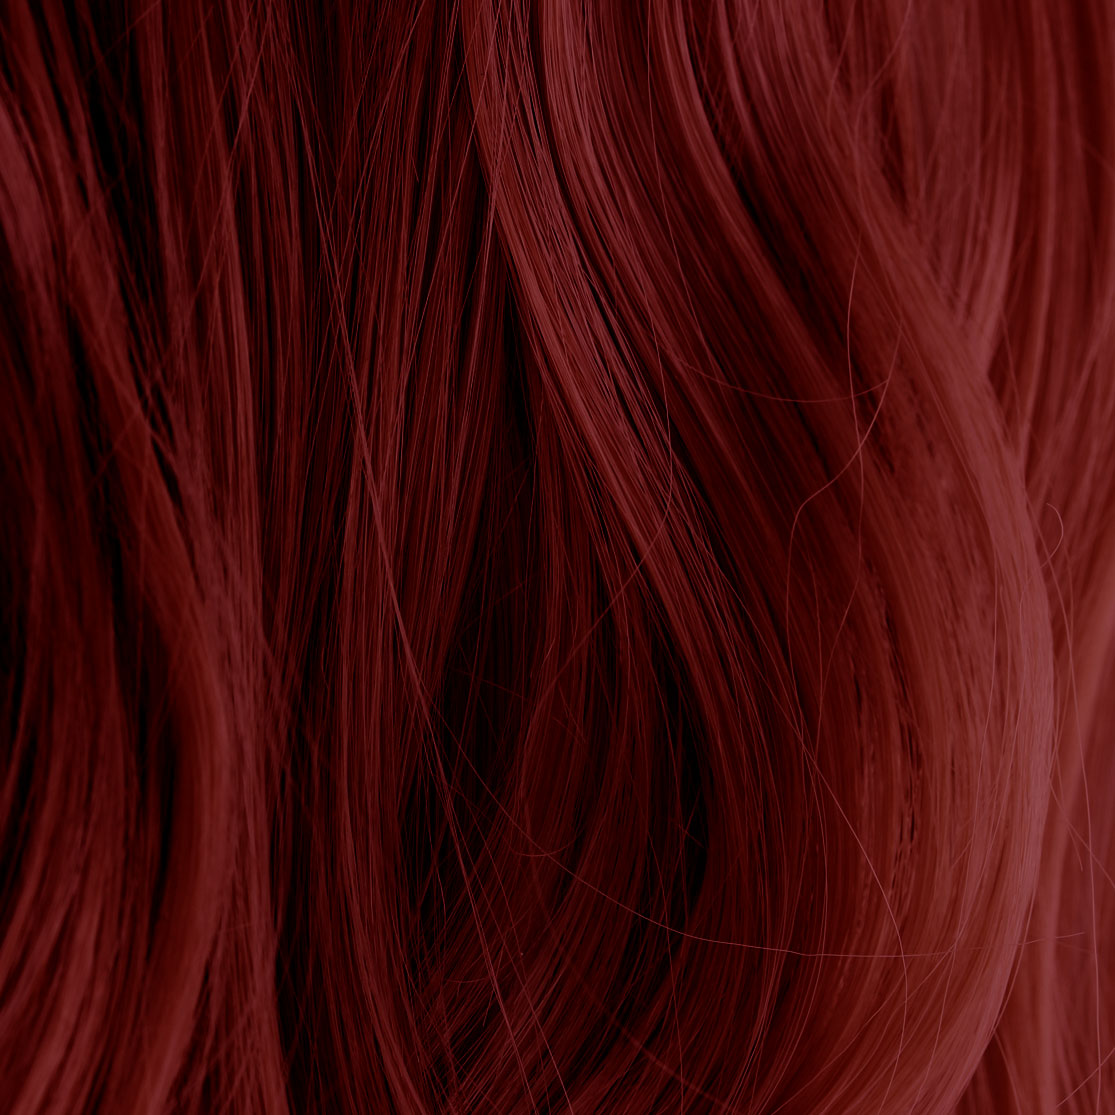 Kleur Plum Henna Hair Dye | Henna Color Lab® - Henna Hair Dye